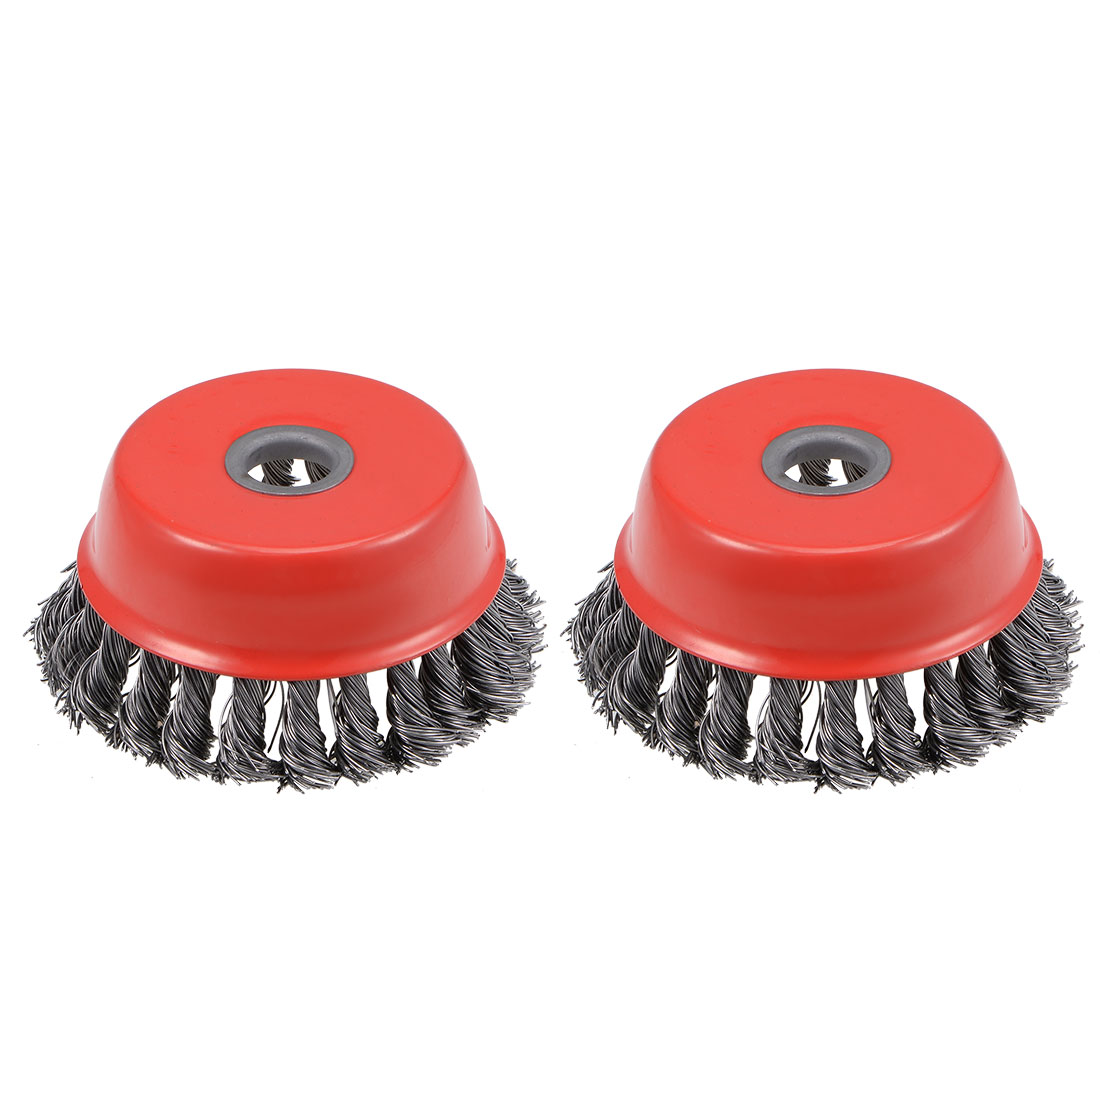 4-Inch Wire Cup Brush Twist Knotted Crimped Steel with 5/8-Inch Arbor Hole 2 Pcs